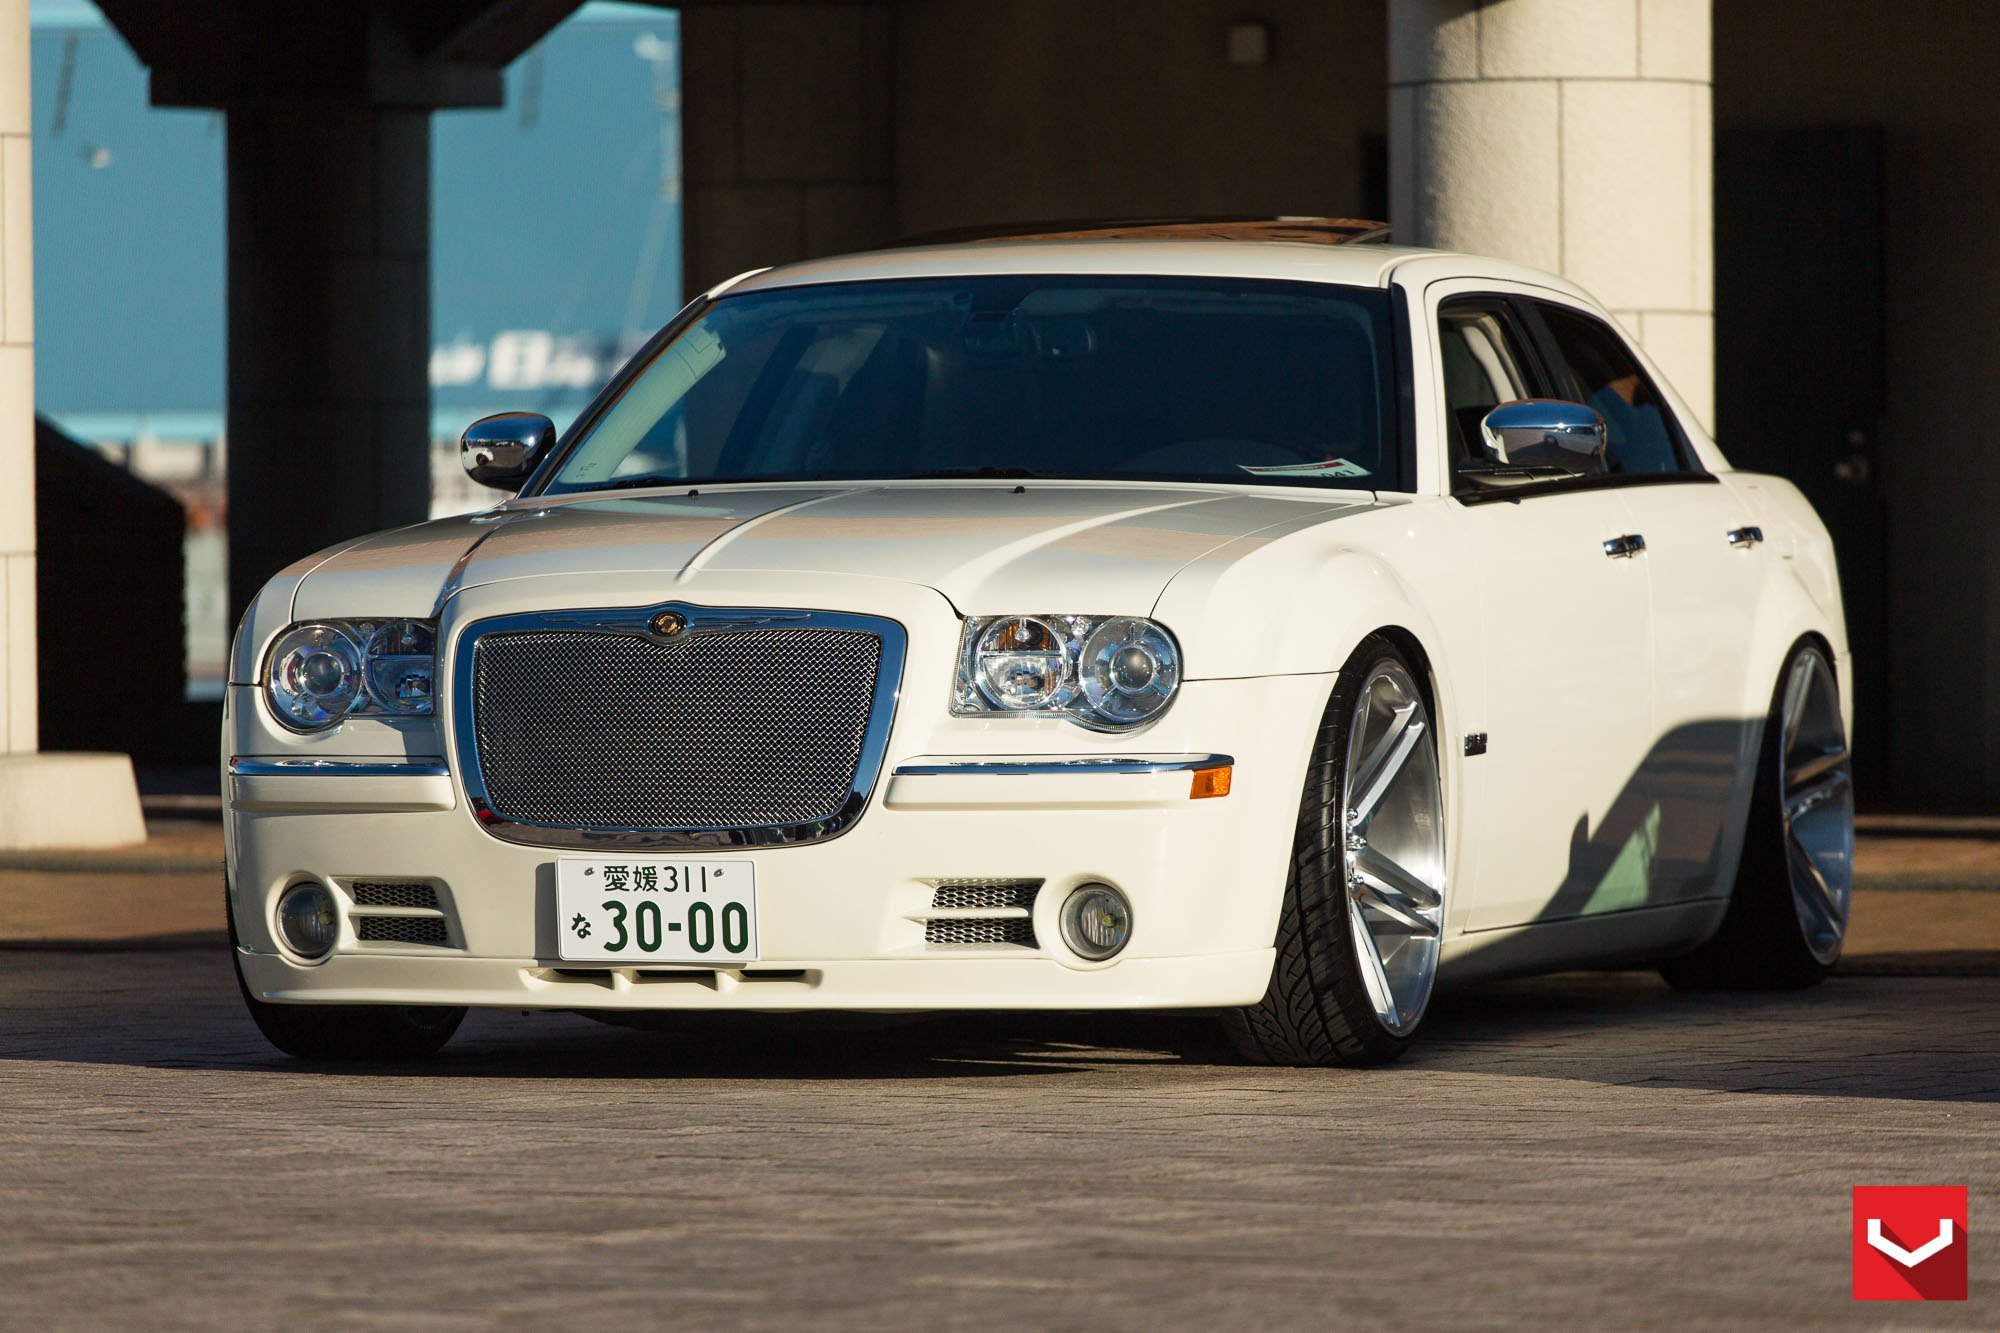 VPS Series Forged Vossen Wheels on White Chrysler 300 - Photo by Vossen